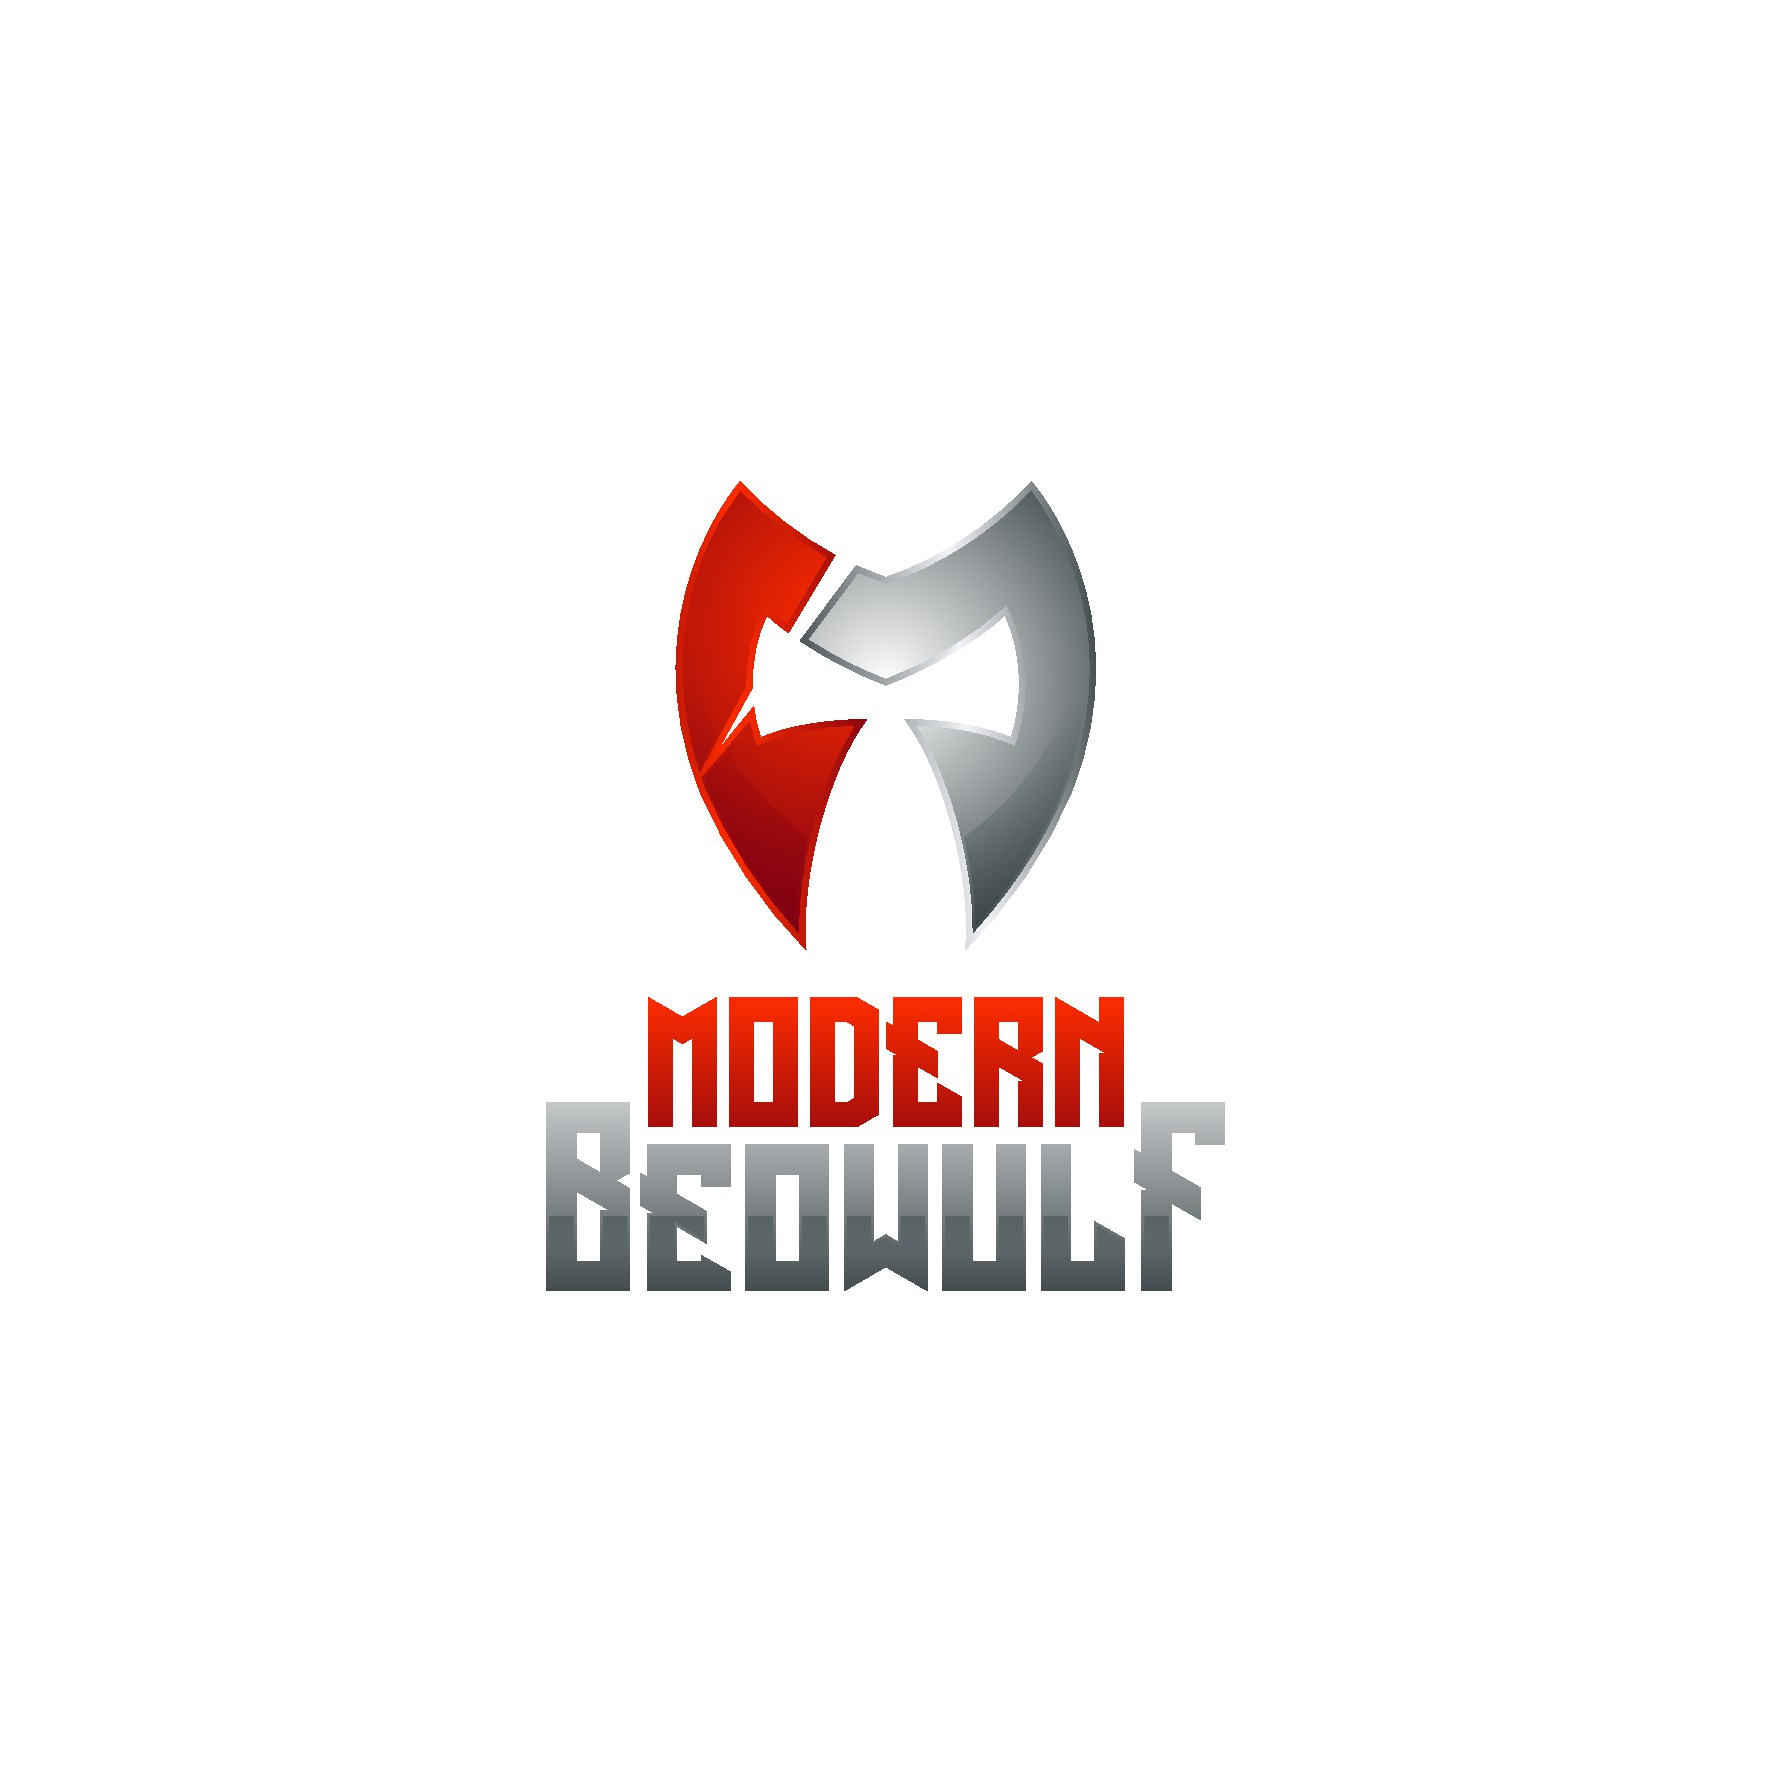 ModernBeowulf needs graphics! First for social media - then for the world!